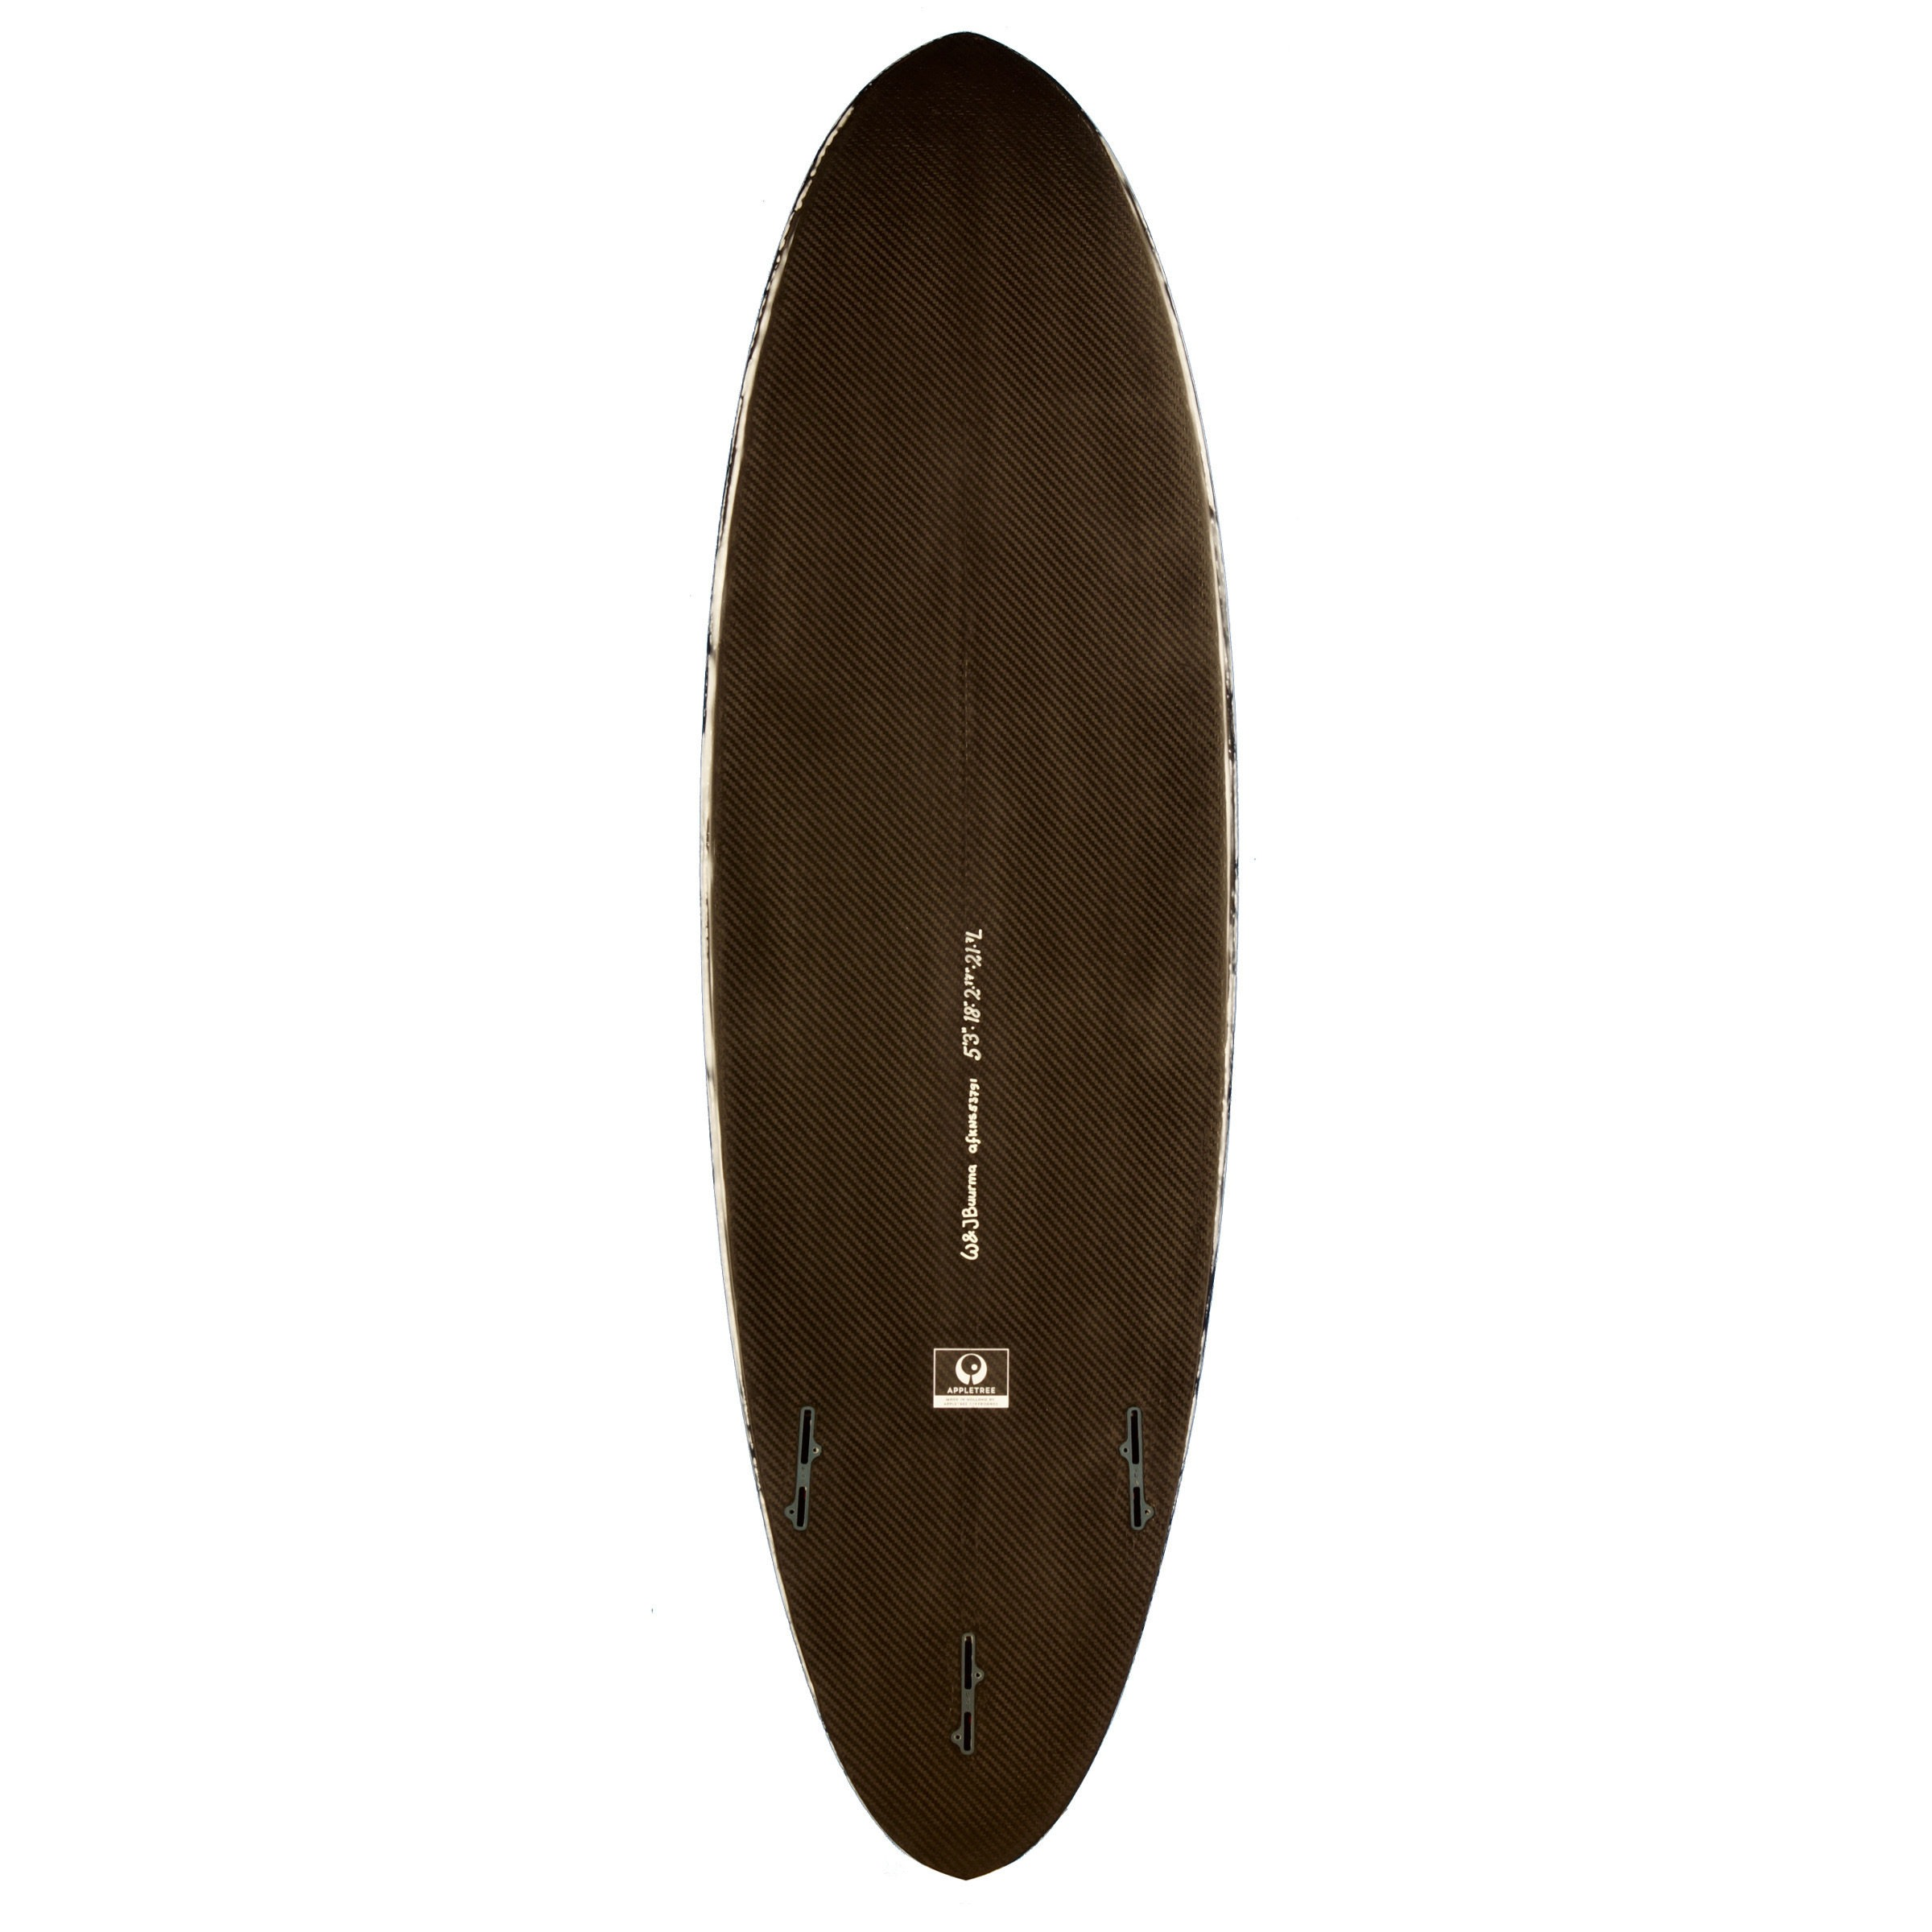 Apple Tree Appleflap Noseless Full Carbon Surfboard